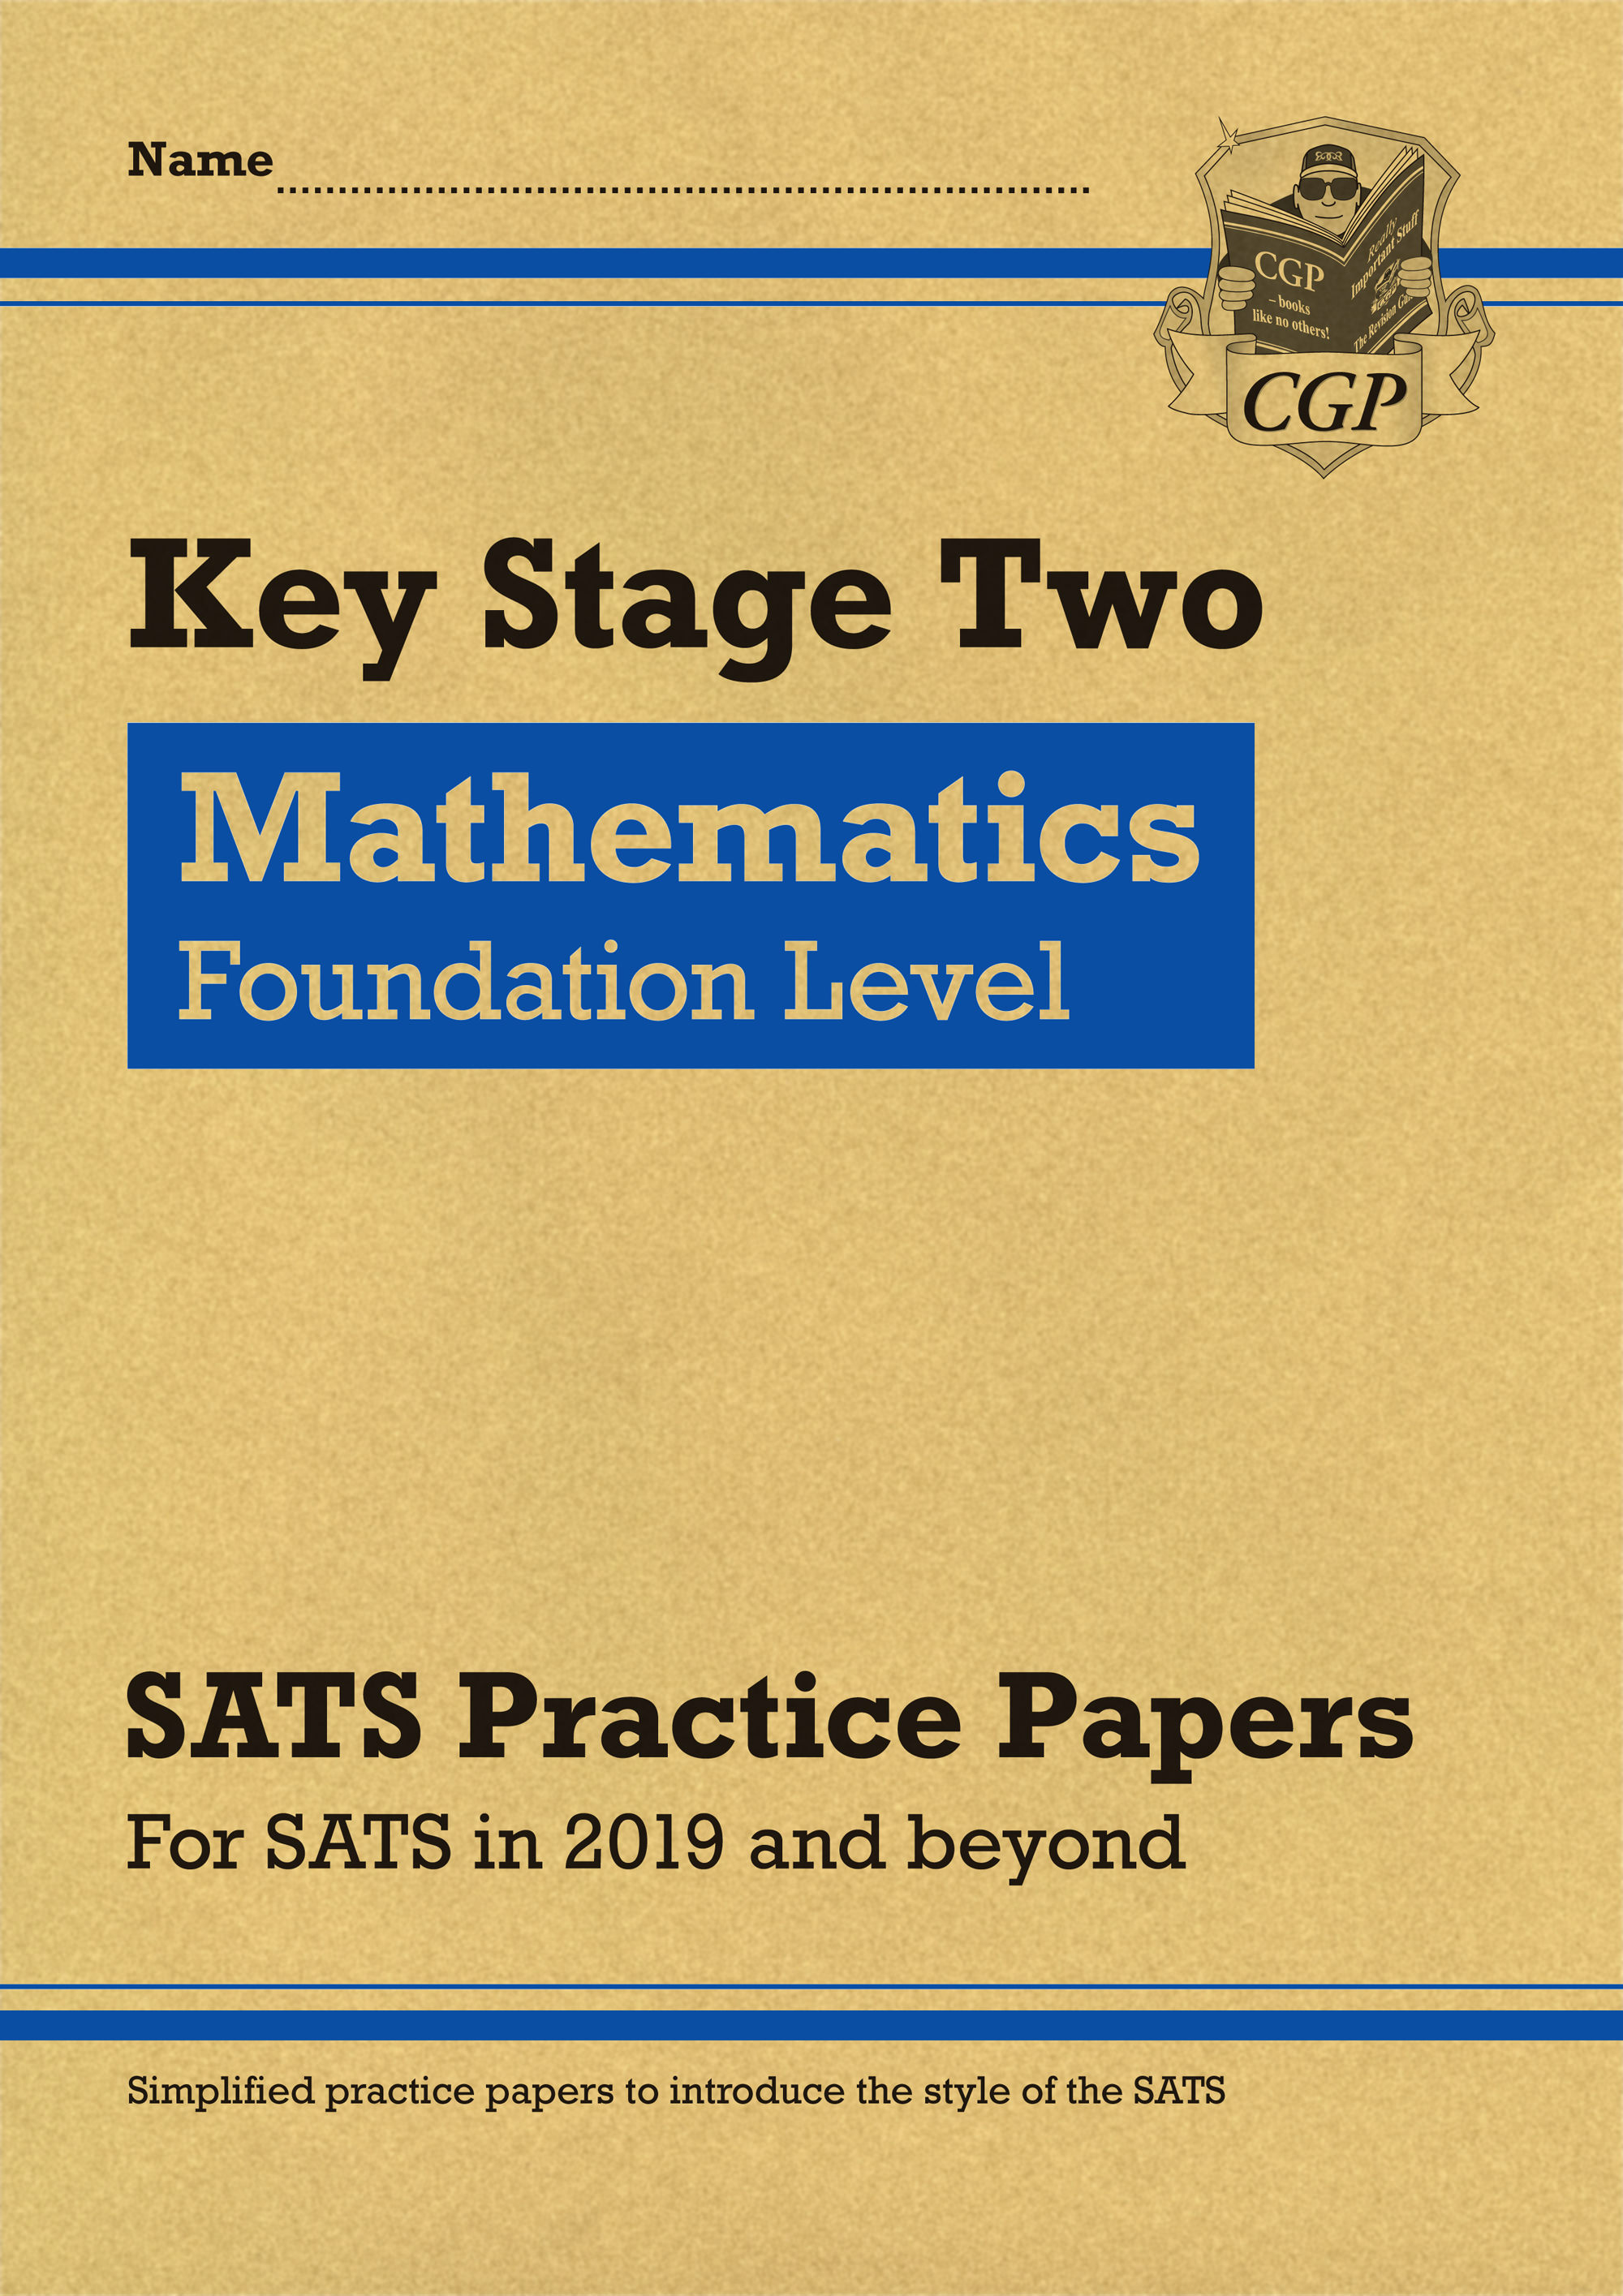 MLFP22 - New KS2 Maths Targeted SATS Practice Papers: Foundation Level (for the 2020 tests)